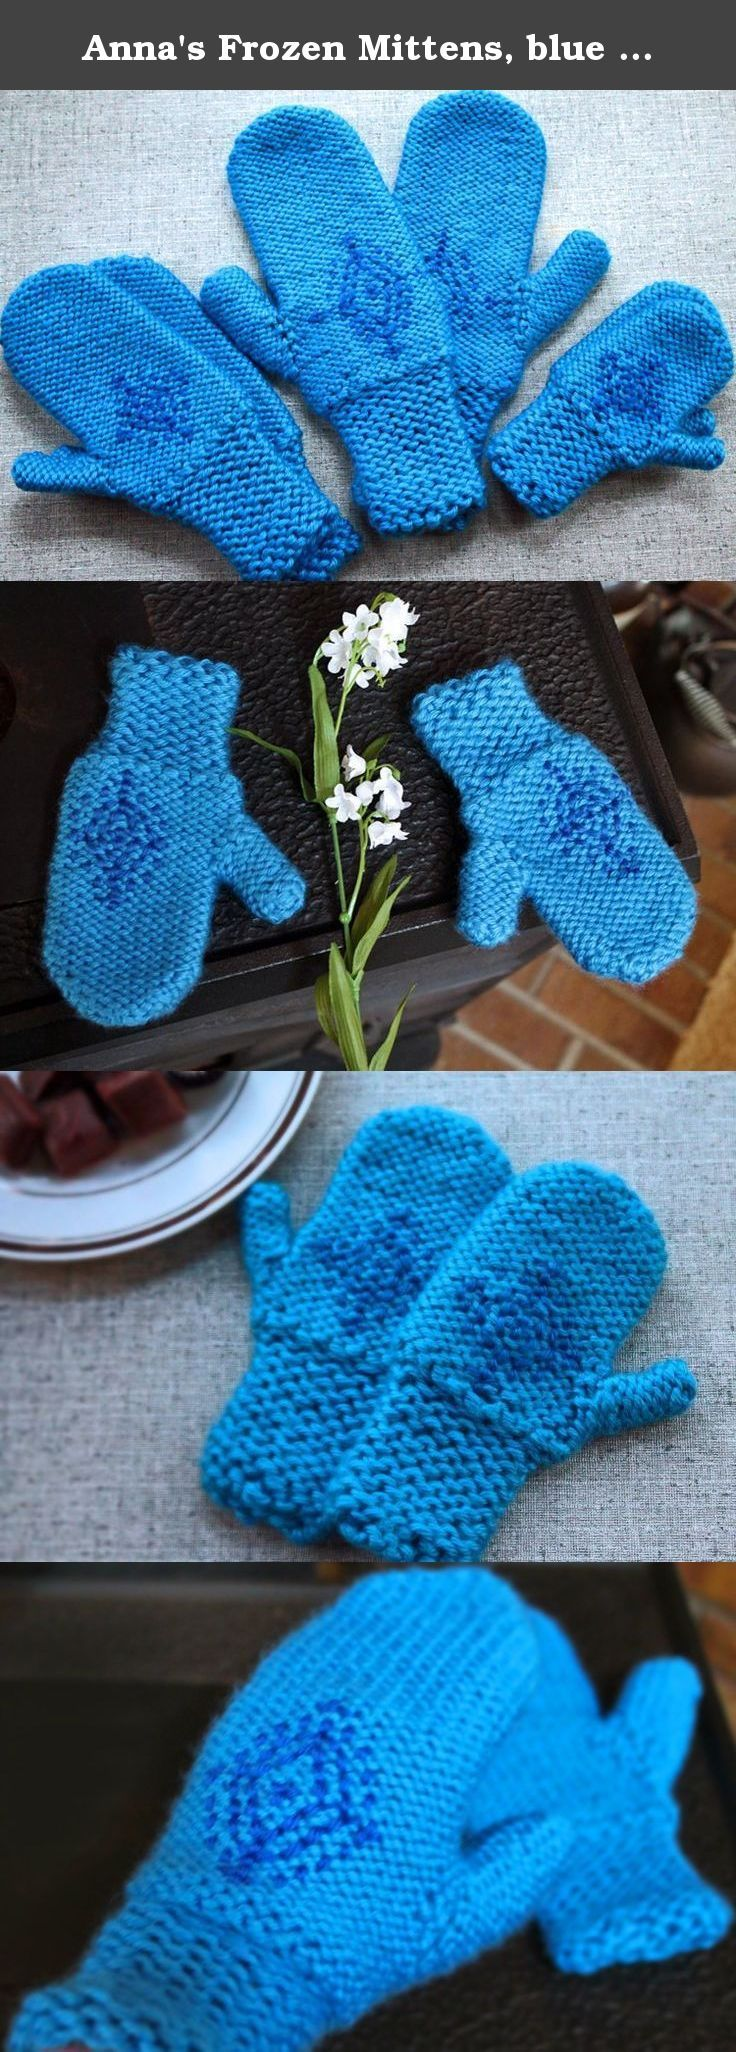 Anna's Frozen Mittens, blue snowflake gloves inspired by Princess Anna's winter gloves in Disney's Frozen, cosplay costume mitts. Anna frozen blue snowflake mittens will keep your princess warm. These hand knit mittens are inspired by Anna's blue gloves in the Disney movie Frozen. A darker blue snowflake pattern is embroidered on the light blue mitten hand. The acrylic yarn used for these mittens is warm and very soft. These mittens look great with an Anna princess costume as well as for...